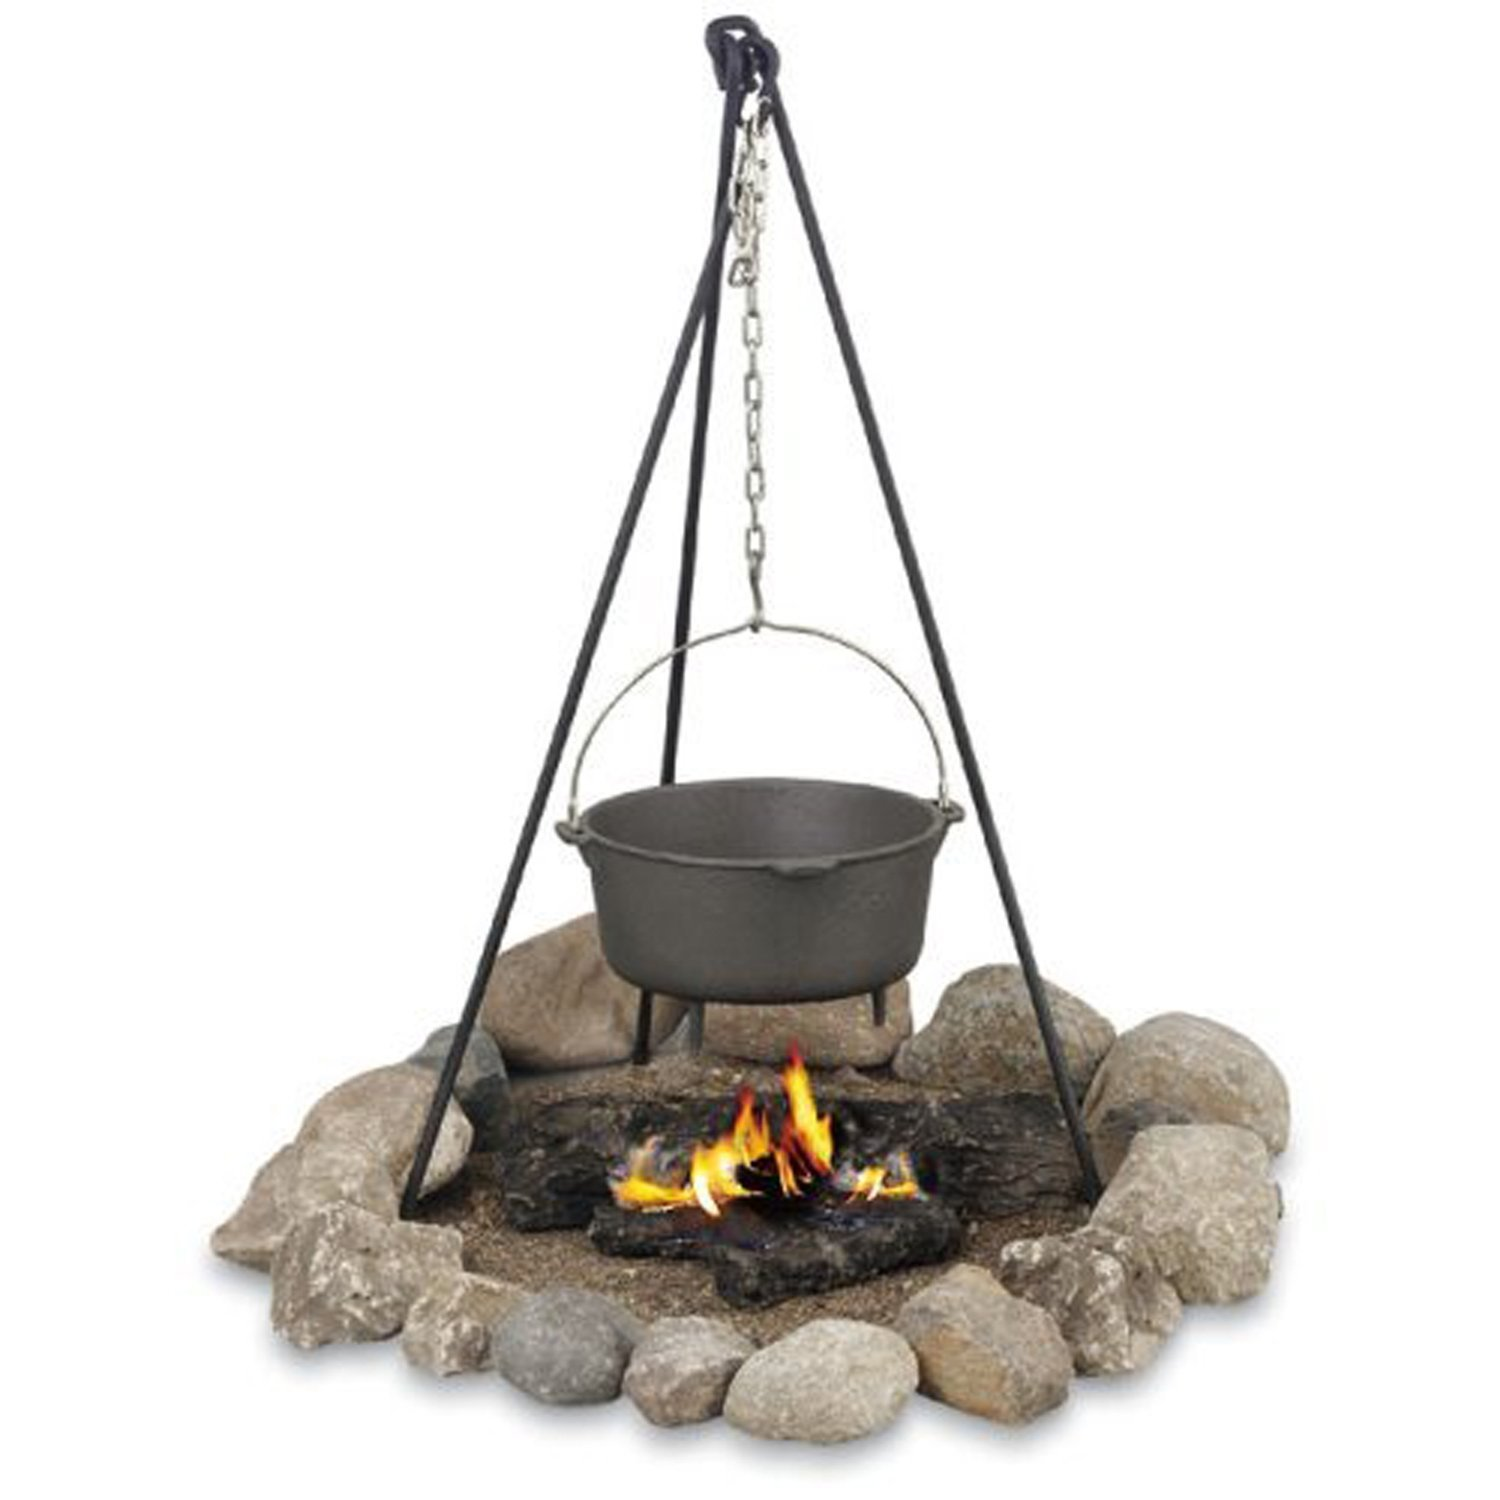 Texsport Deluxe Campfire Cooking Tripod made our list of Campfire Cooking Equipment You Can't Live Without